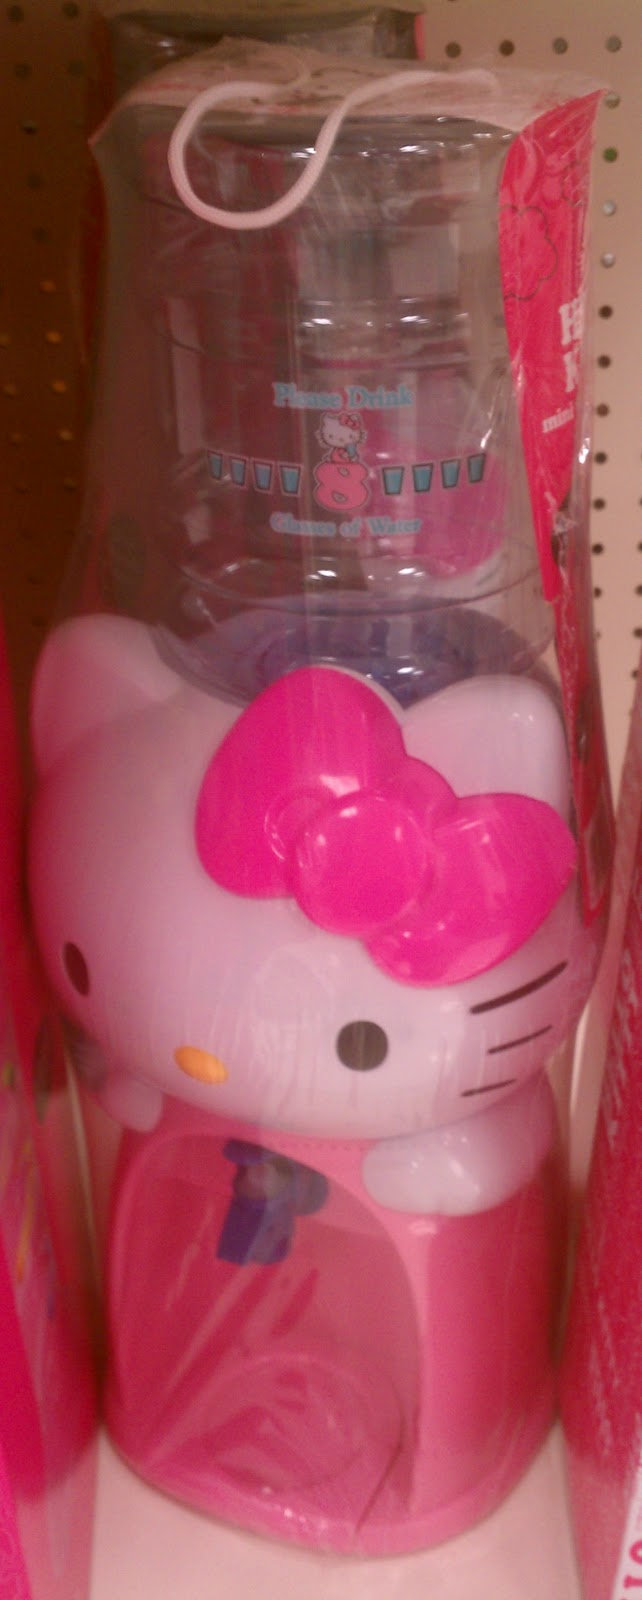 Cherry Gal Blossoming Hello Kitty Really Does Have